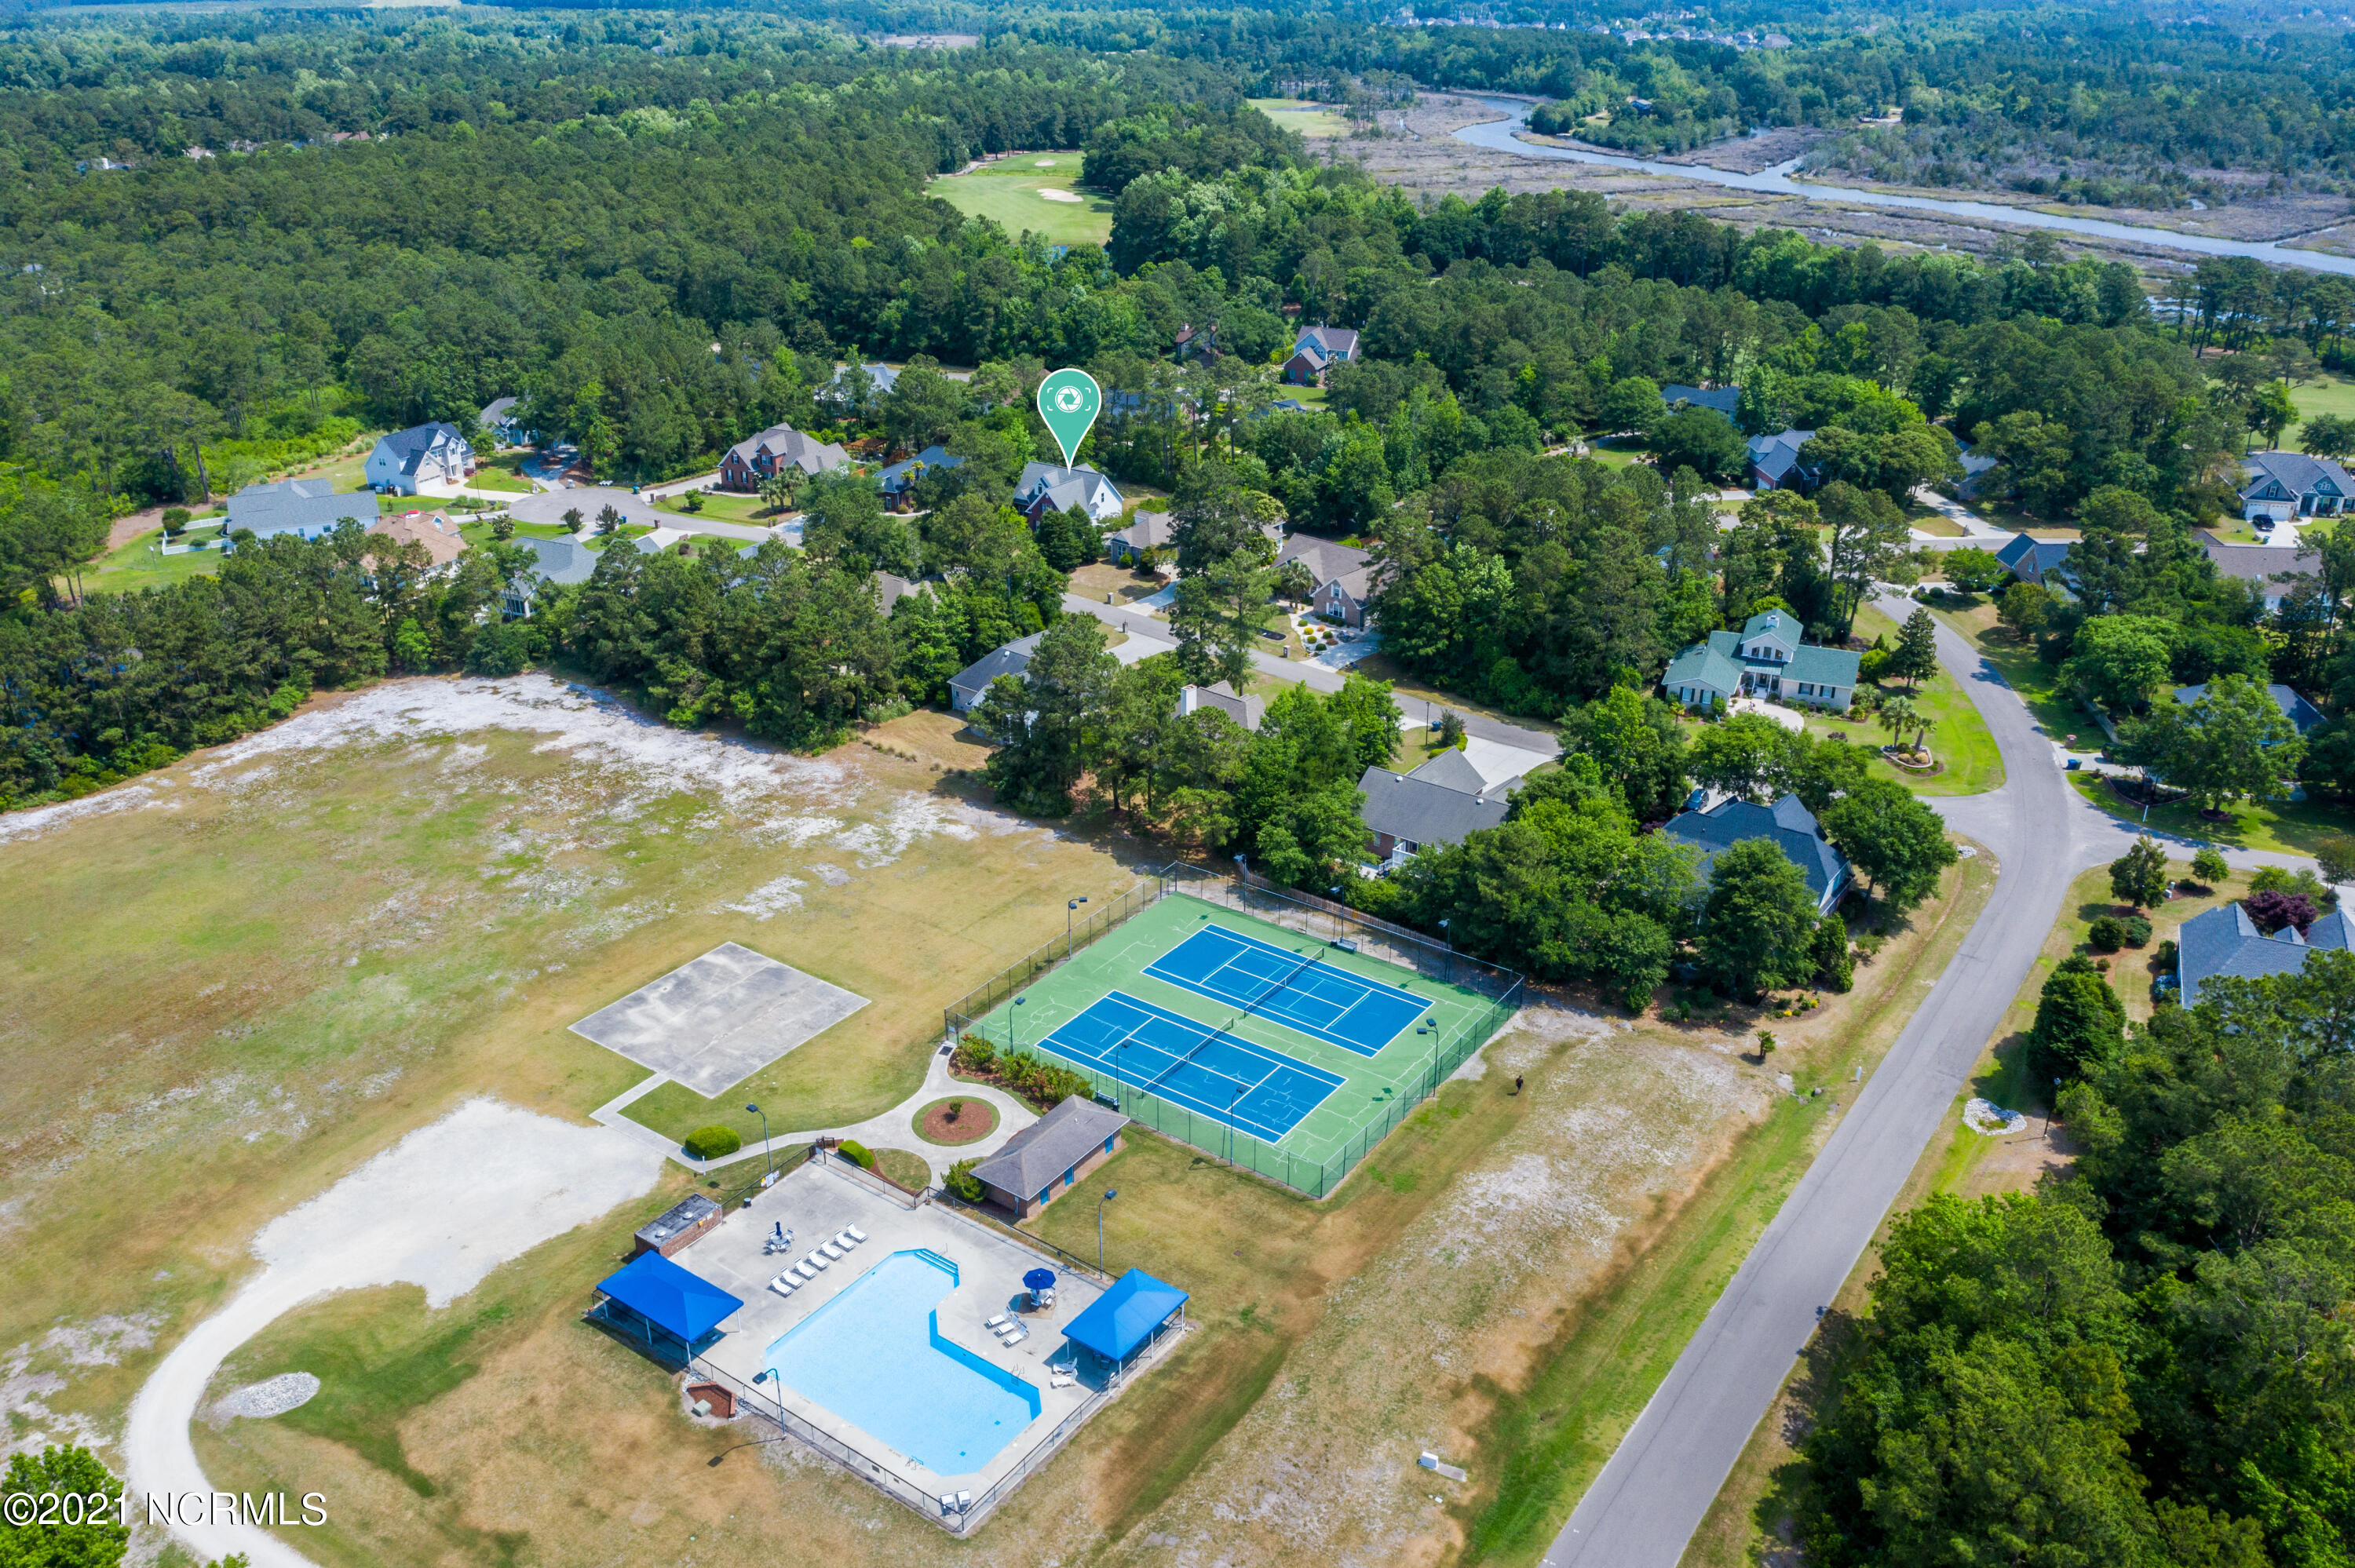 208 Port Side Drive, Sneads Ferry, North Carolina 28460, 3 Bedrooms Bedrooms, 7 Rooms Rooms,2 BathroomsBathrooms,Single family residence,For sale,Port Side,100275119